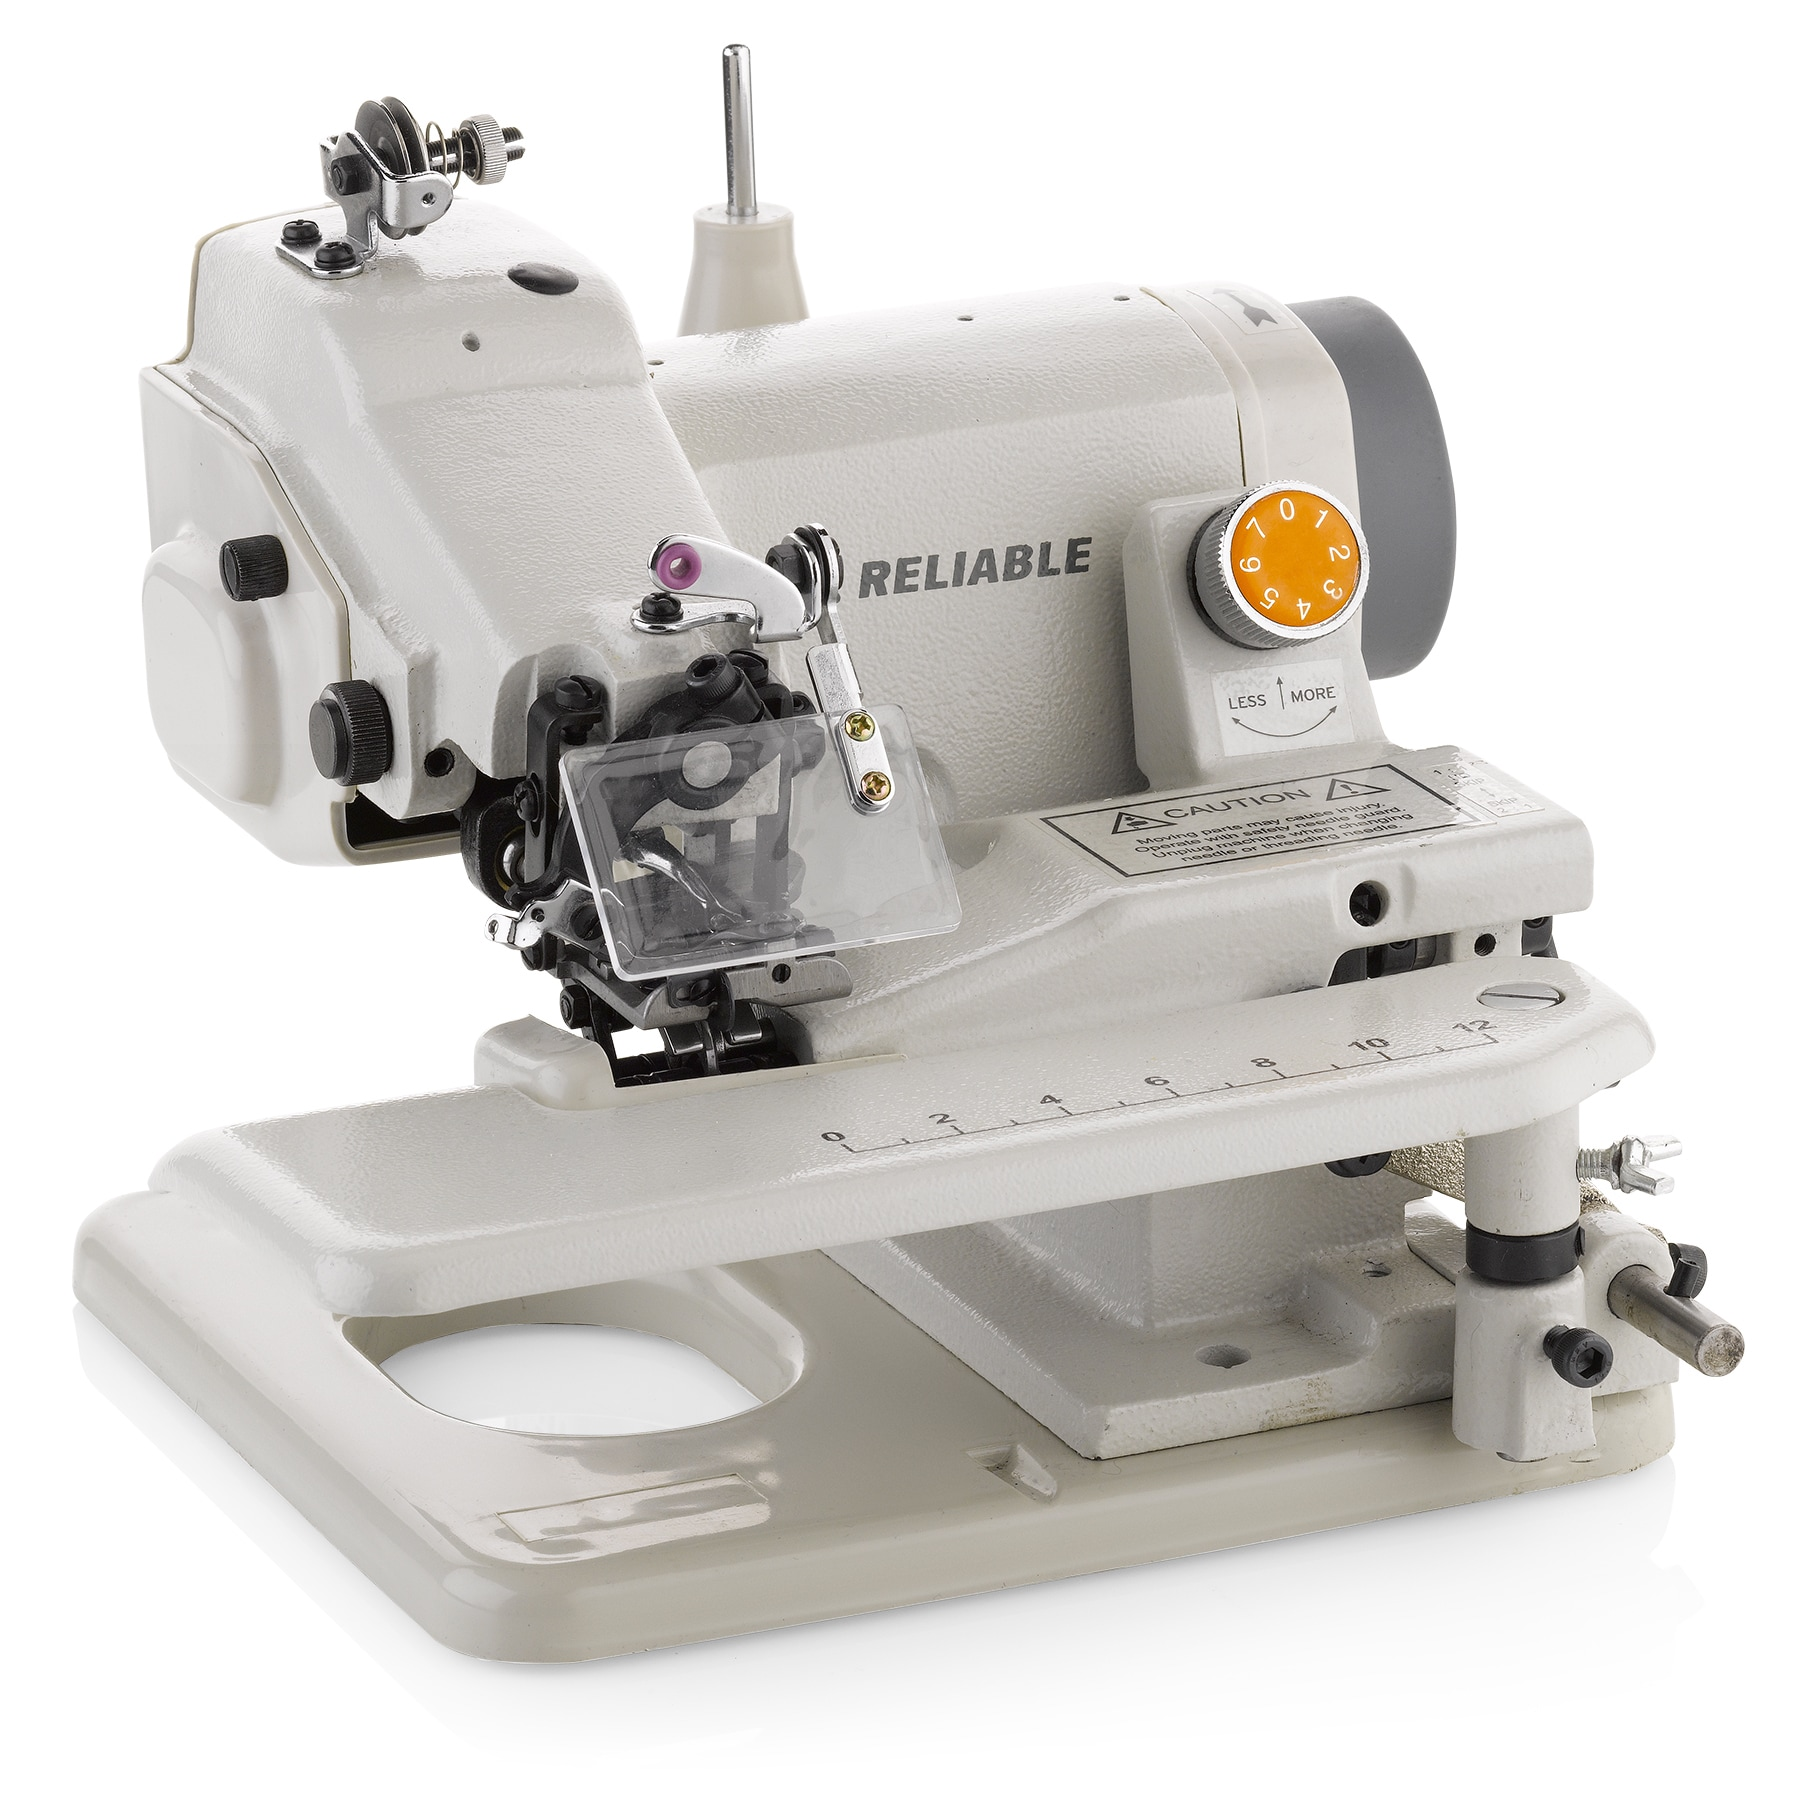 Reliable Maestro 600SB Portable Blindstitch Sewing Machin...